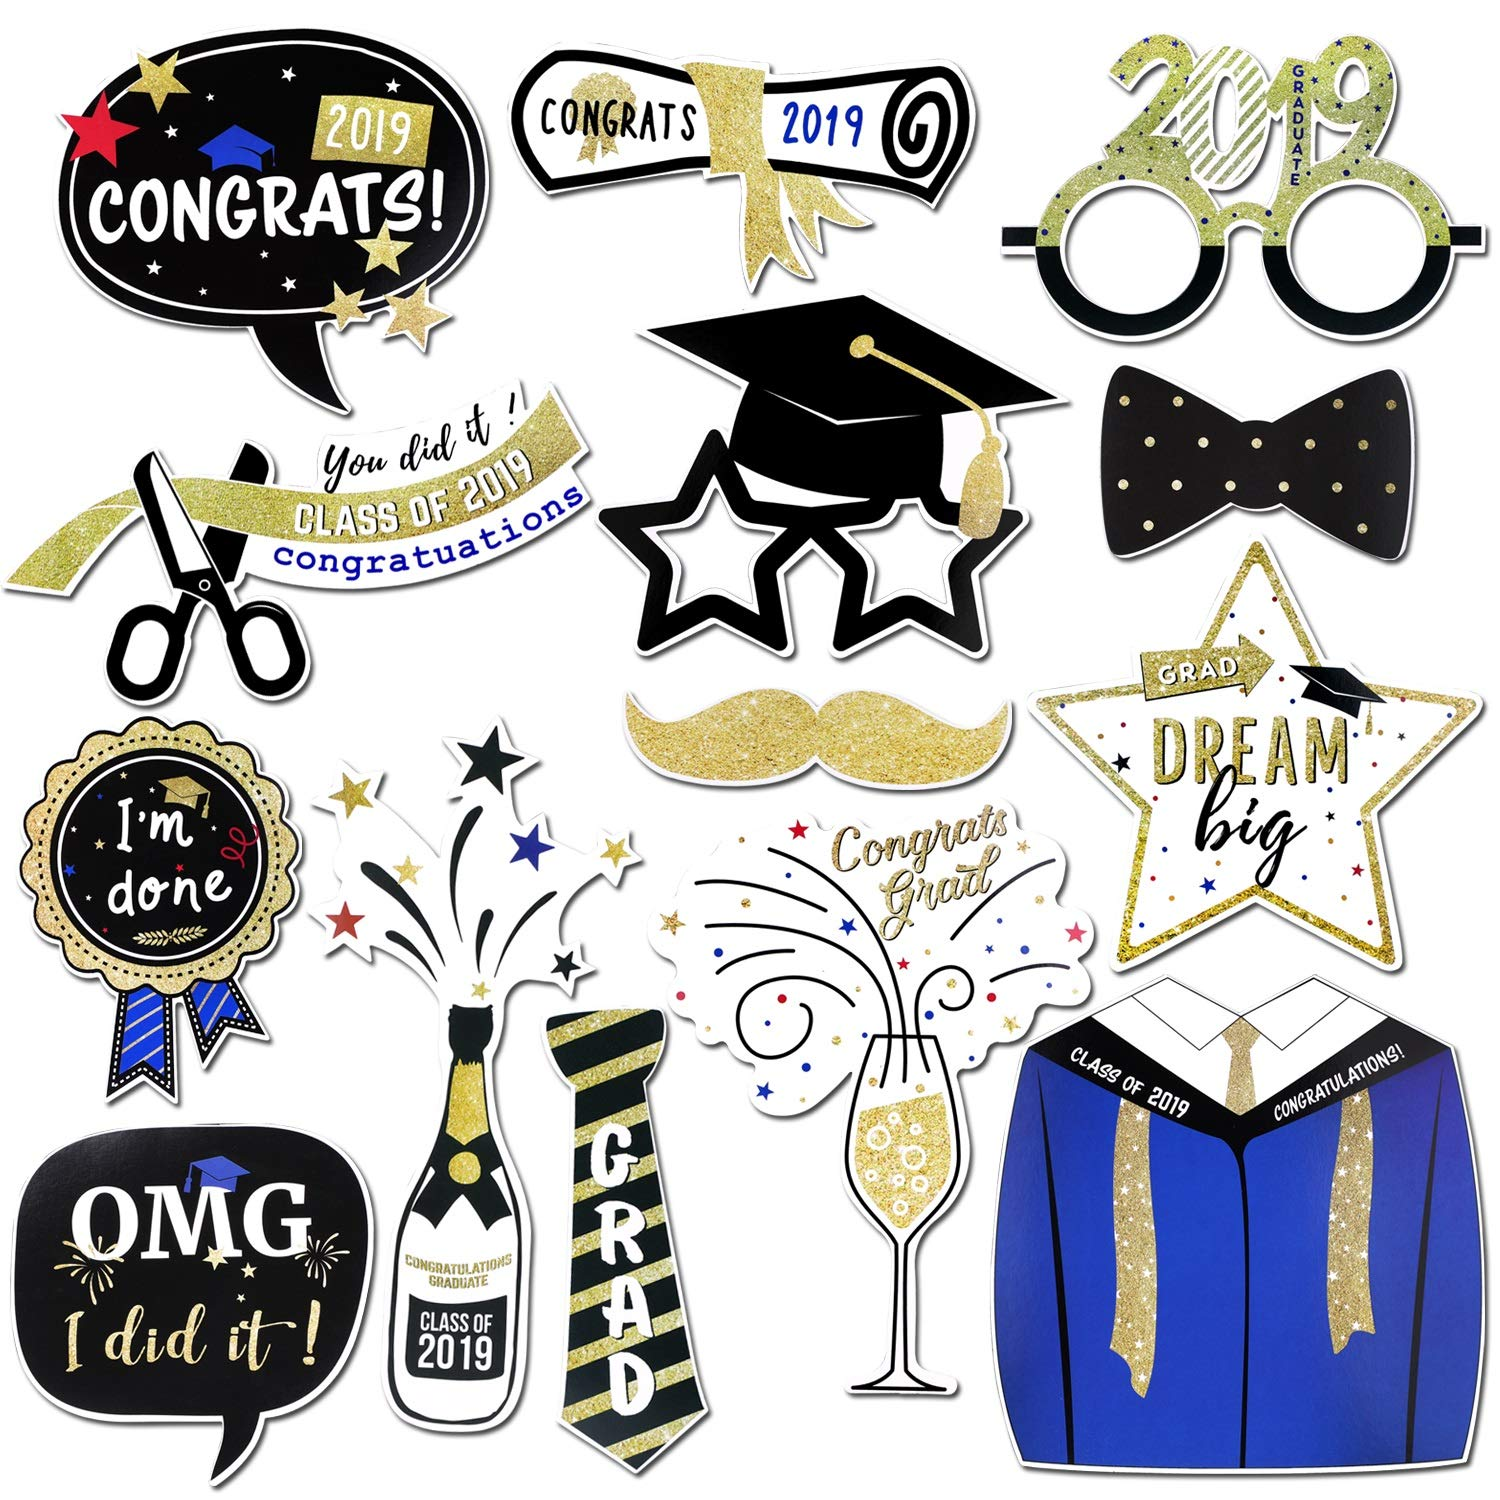 14count Konsait Graduation Photo Booth Props Large Graduation Photo Props Grad Party Decor Class of 2019 with Sticks Graduation Party Favors Supplies Decorations Student Gift